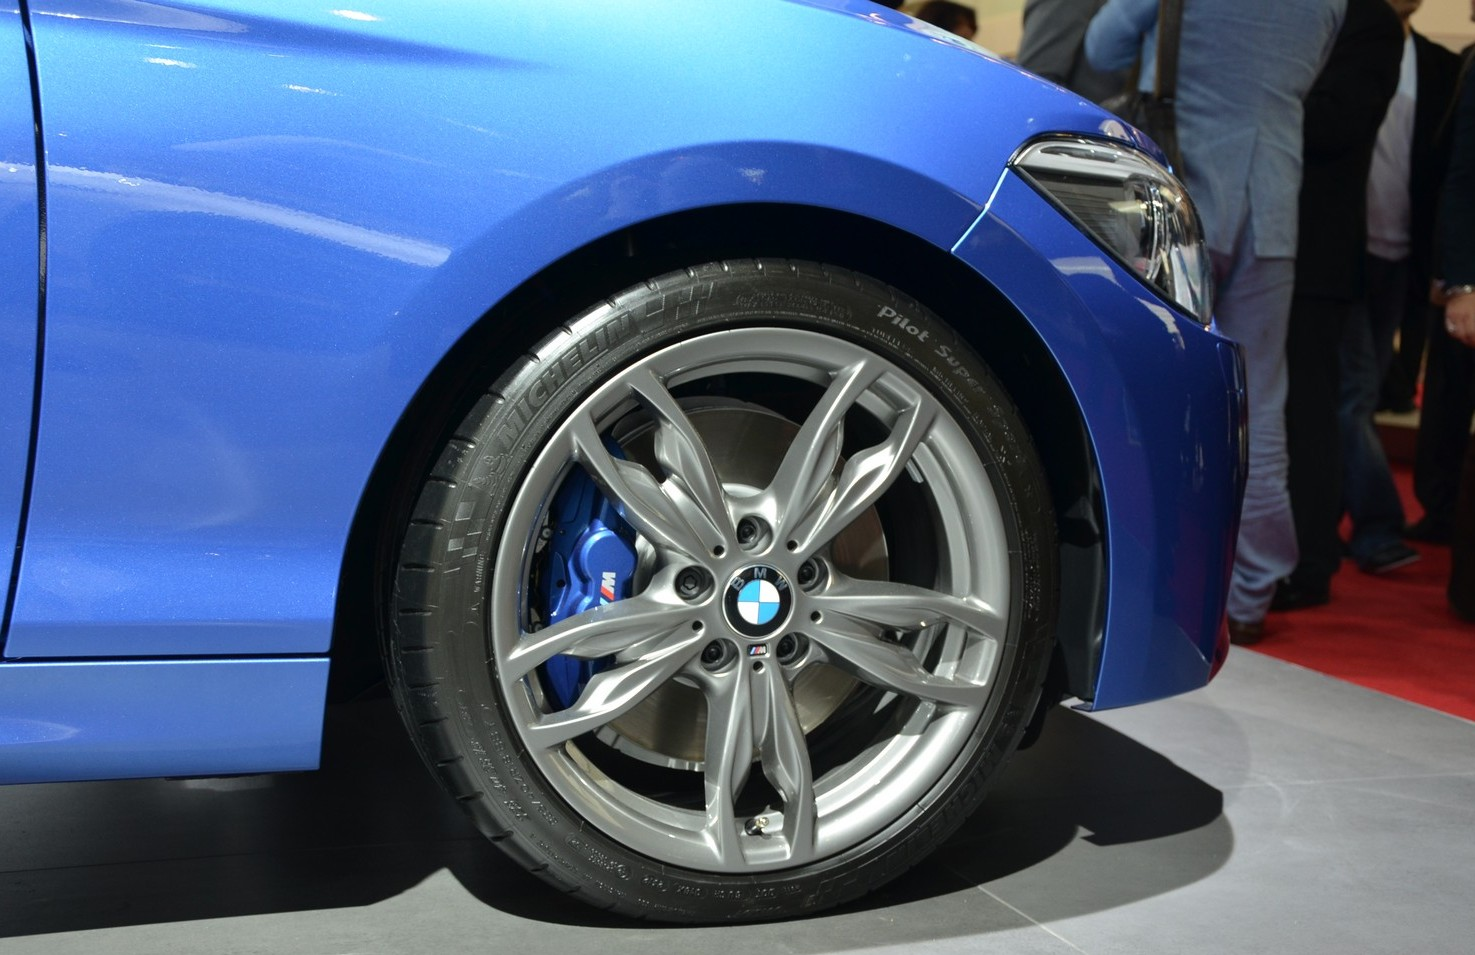 BMW M135i XDrive Wheels (View 7 of 7)